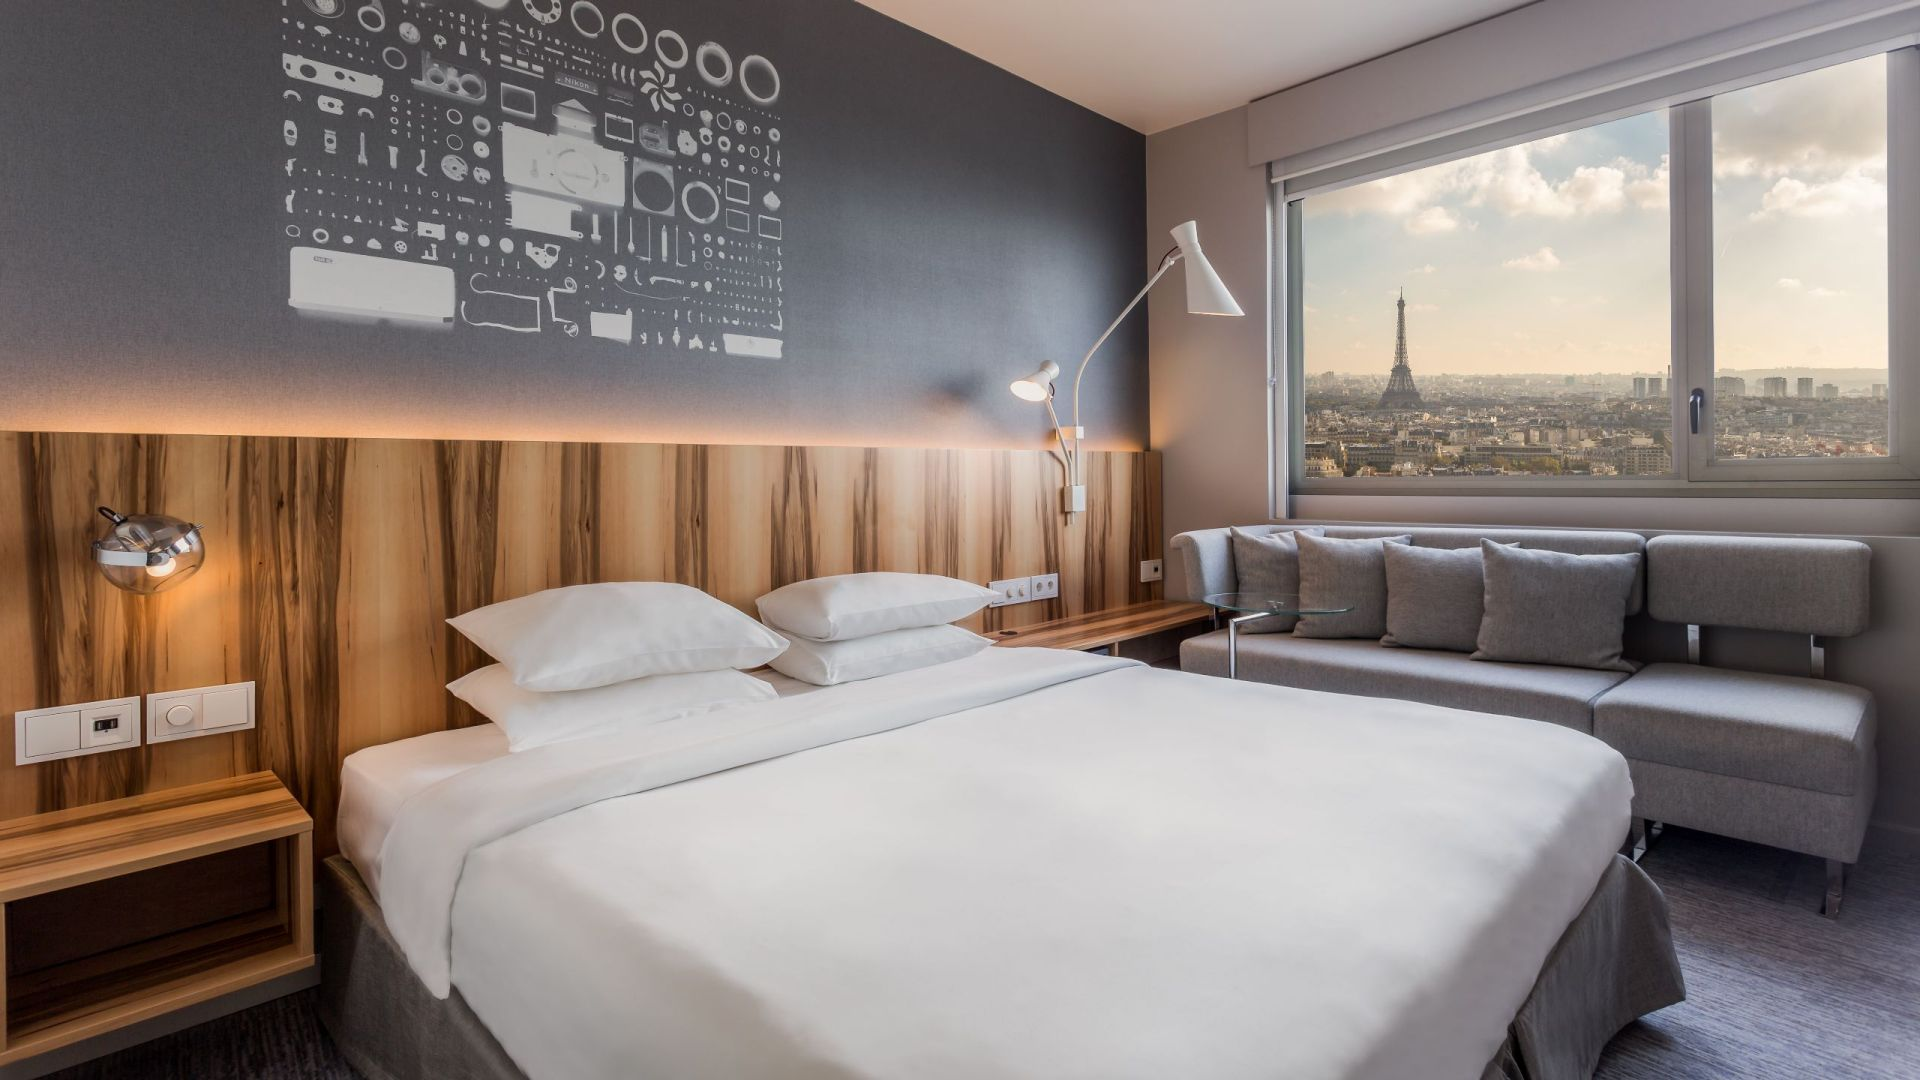 4 star paris hotel with a view hyatt regency paris Étoile